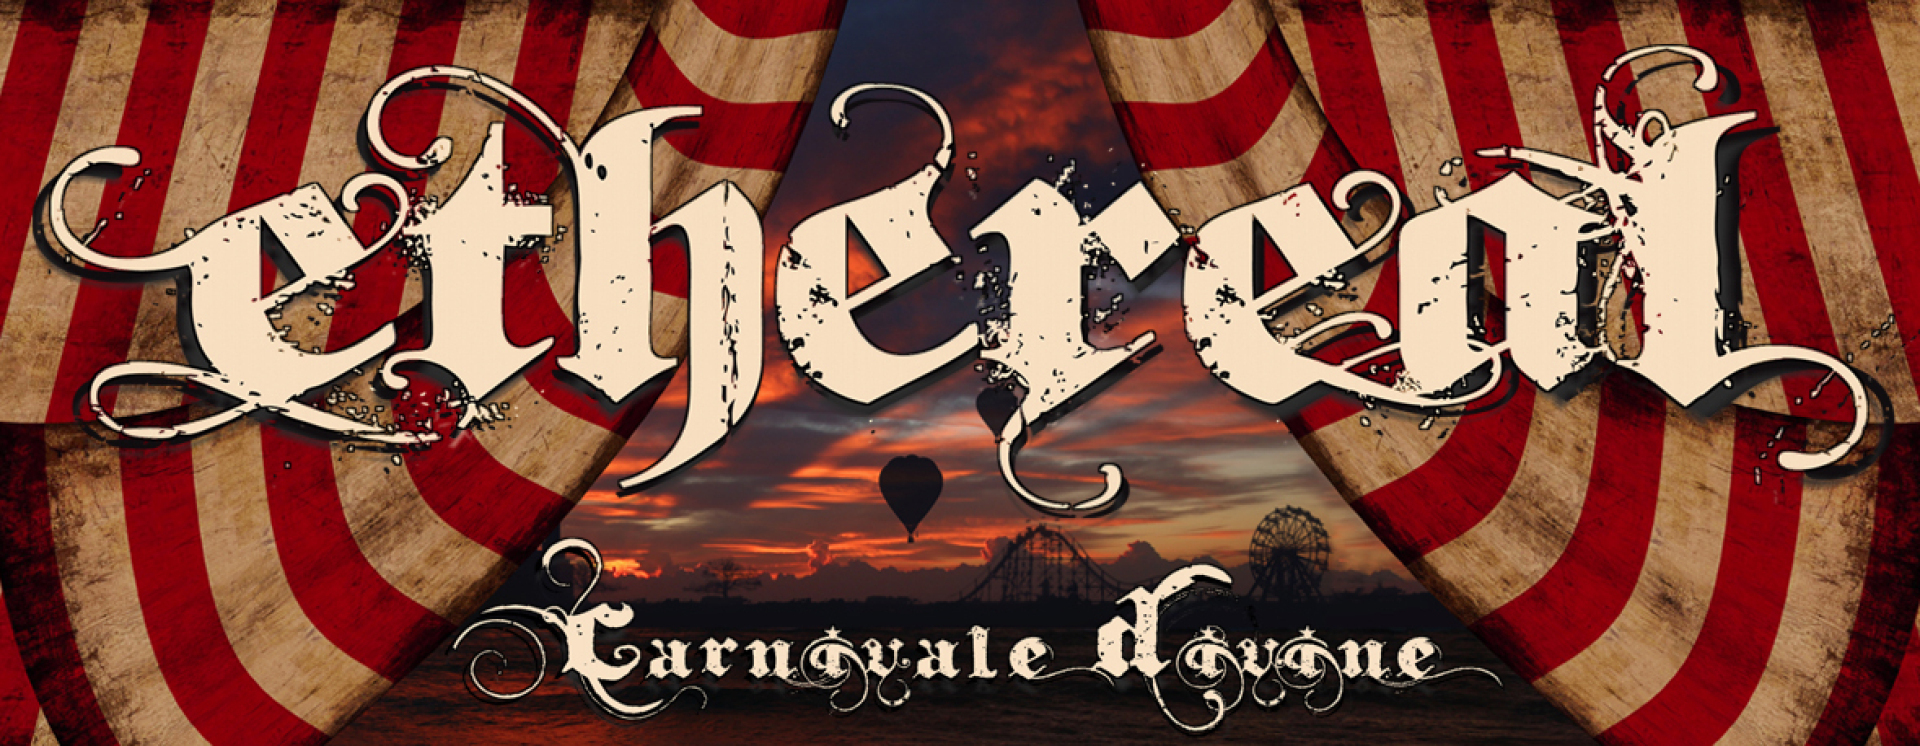 1448645311 ethereal carnivale rn cover copy